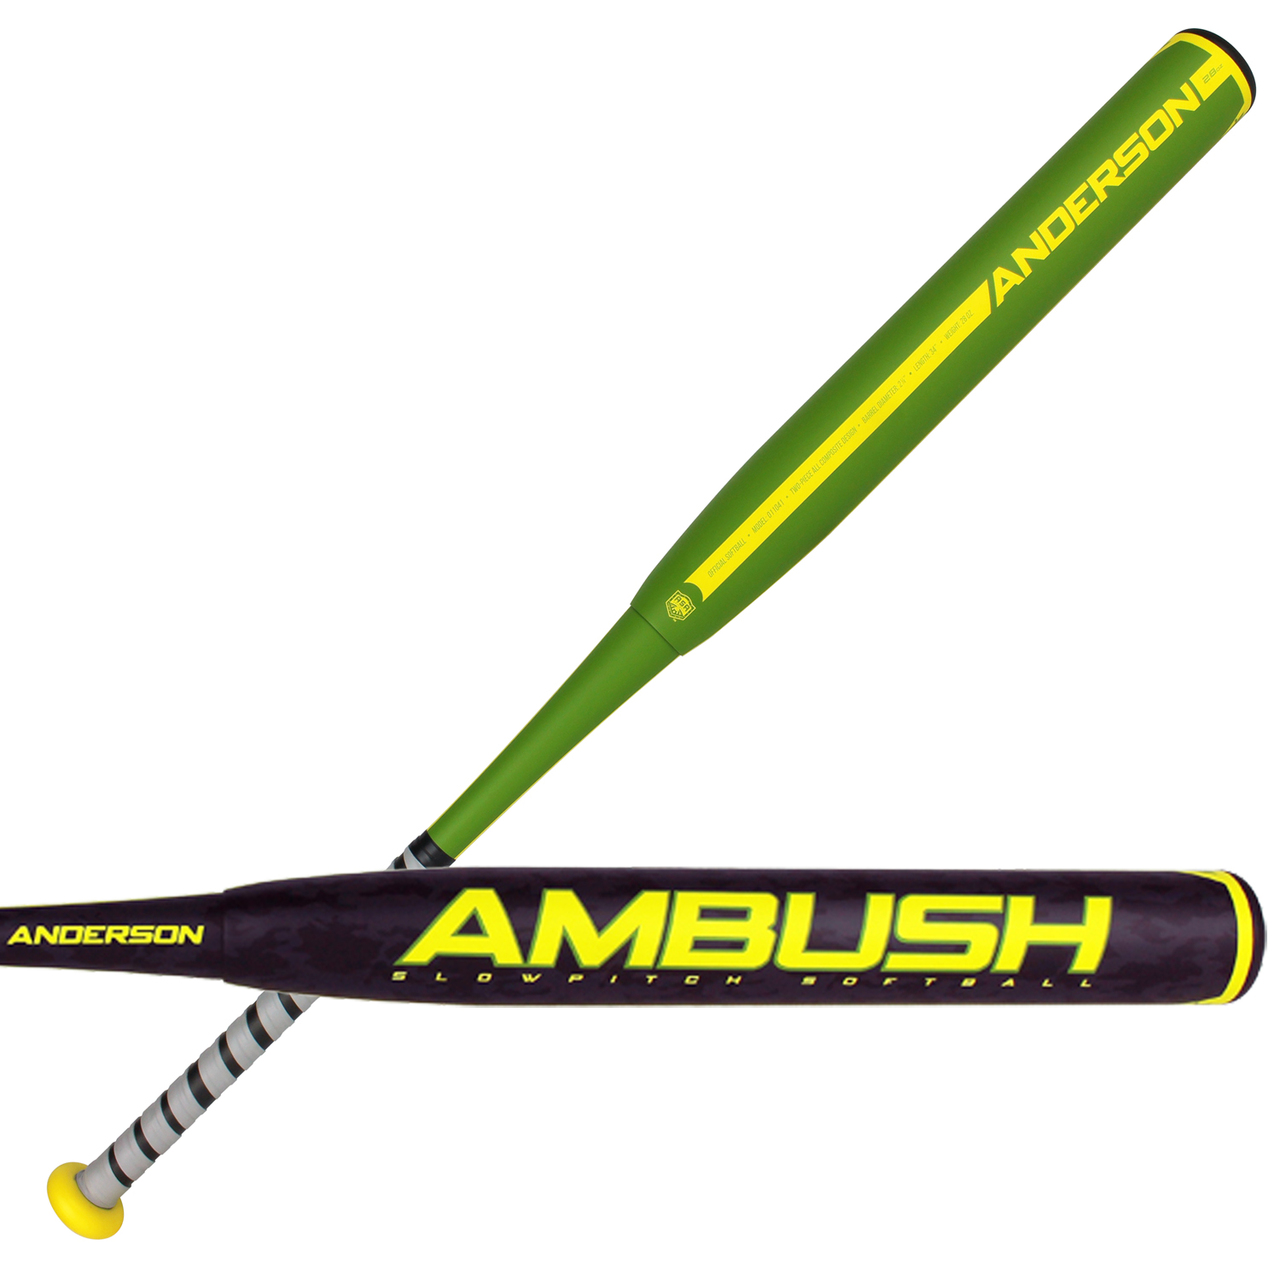 anderson-bat-company-ambush-asa-slow-pitch-softball-bat-34-inch-27-oz 110413427  874147007730 The 2017 <strong>Ambush Slow Pitch</strong> two piece composite bat is made